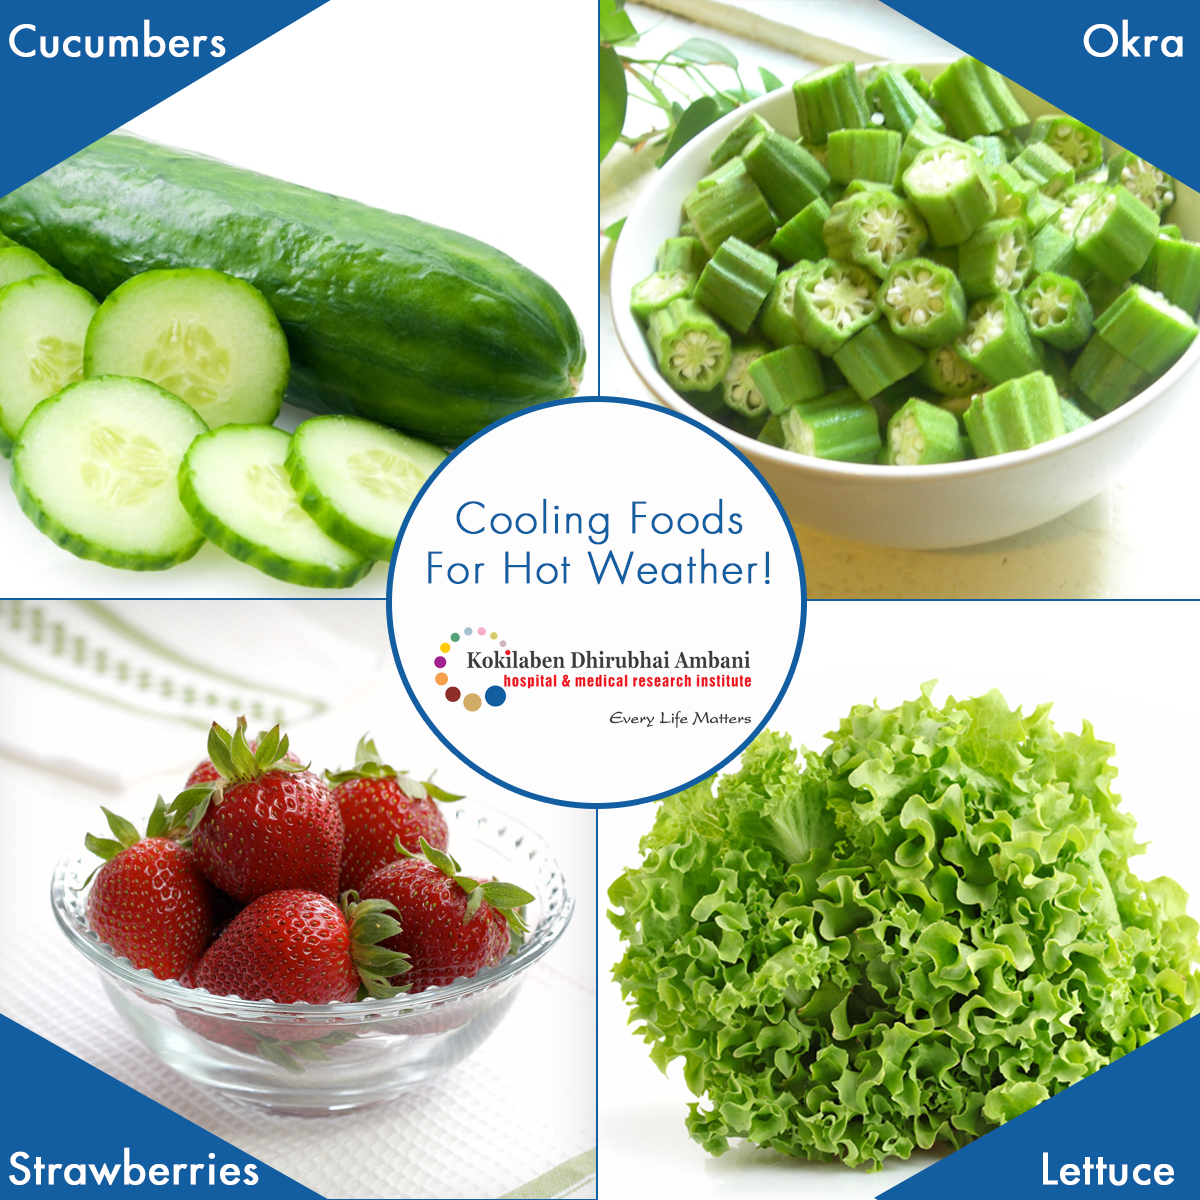 Cooling foods for hot weather!